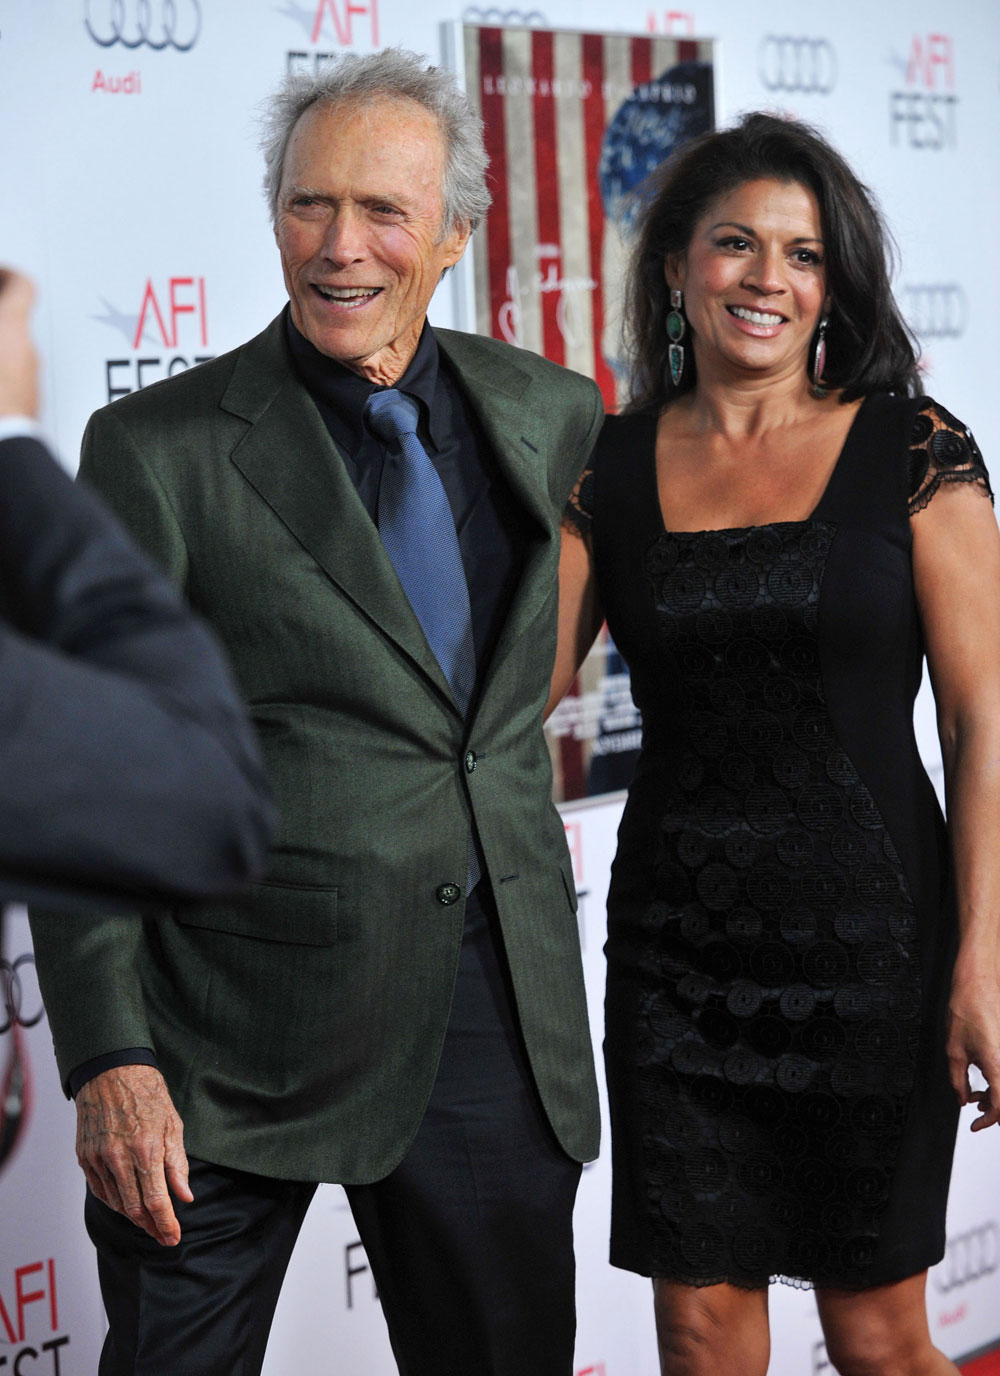 Dina eastwood files for orce from clint eastwood 83 who has a new